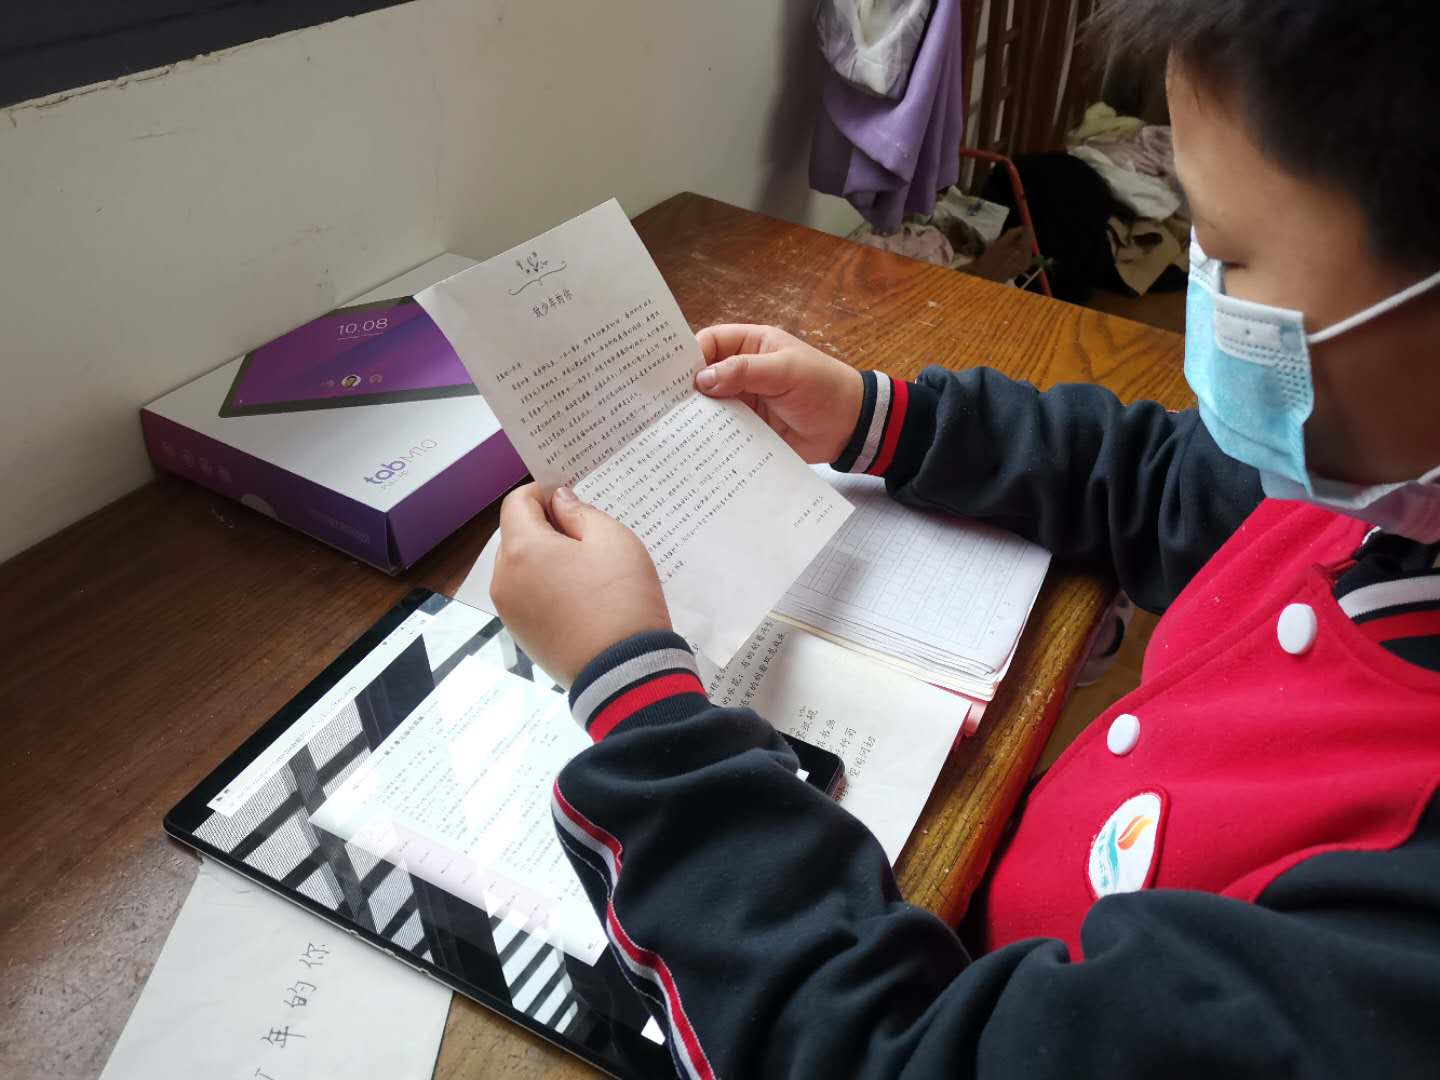 A student in Hubei Province using his new tablet and reading the letter from Lenovo CEO Yuanqing Yang.